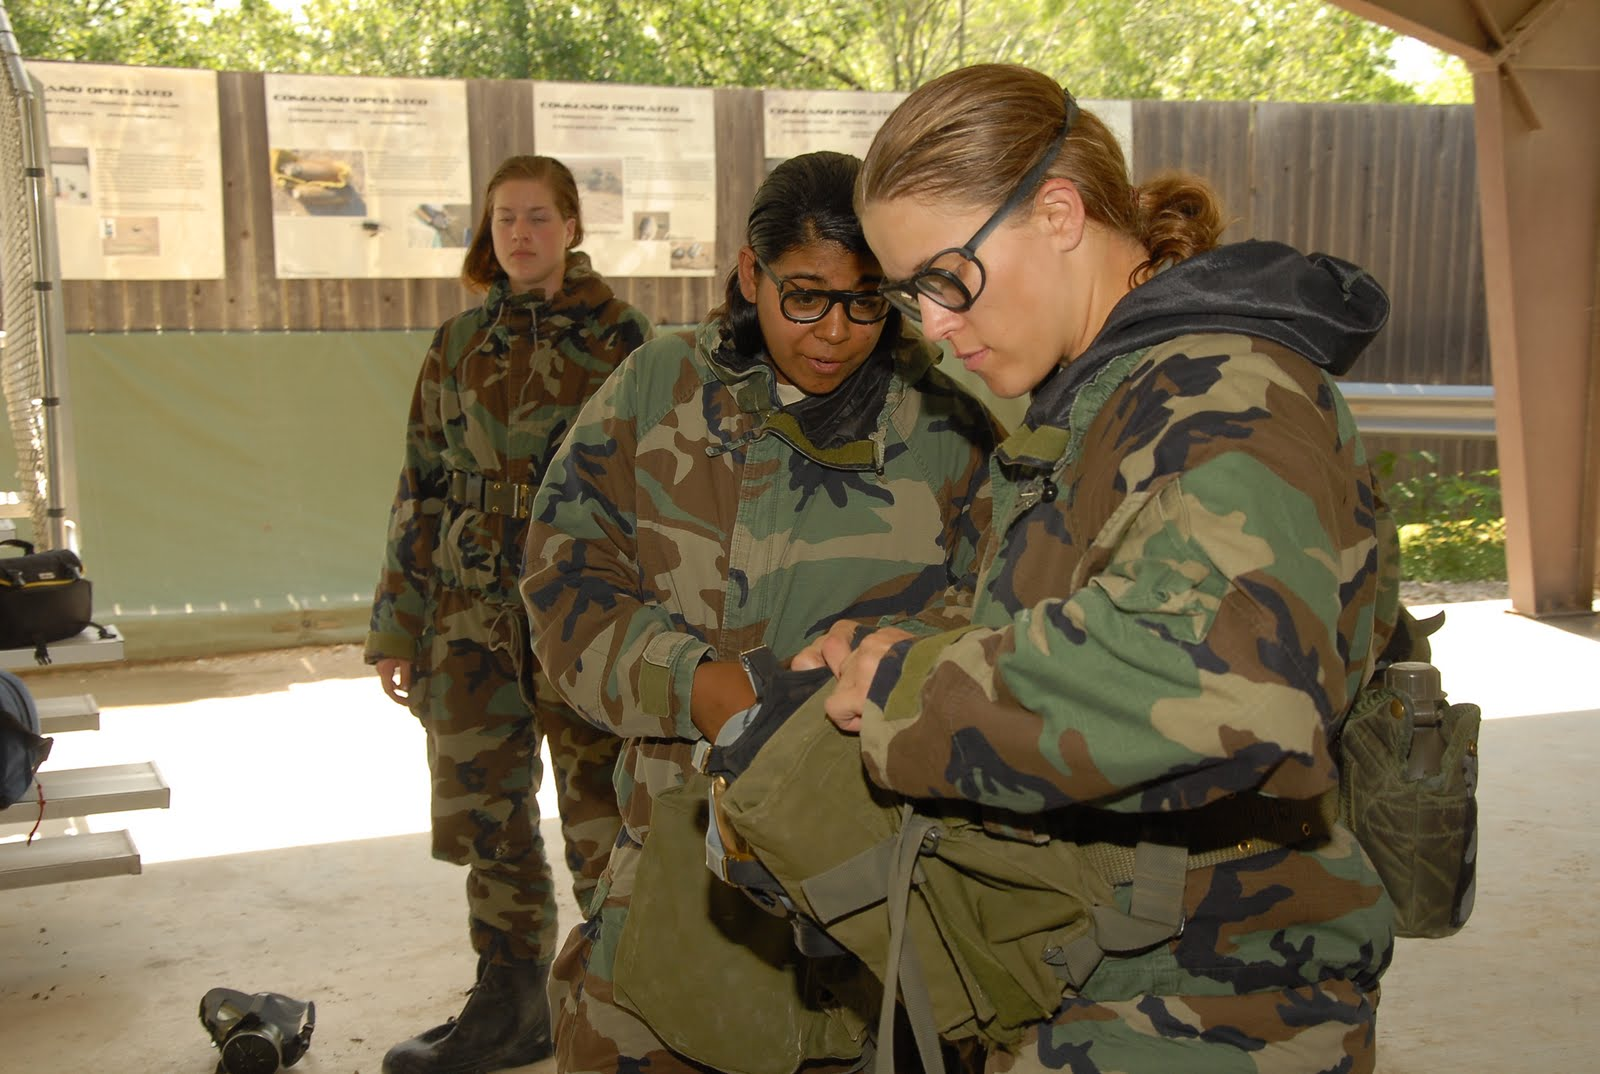 Learning chemical warfare procedures